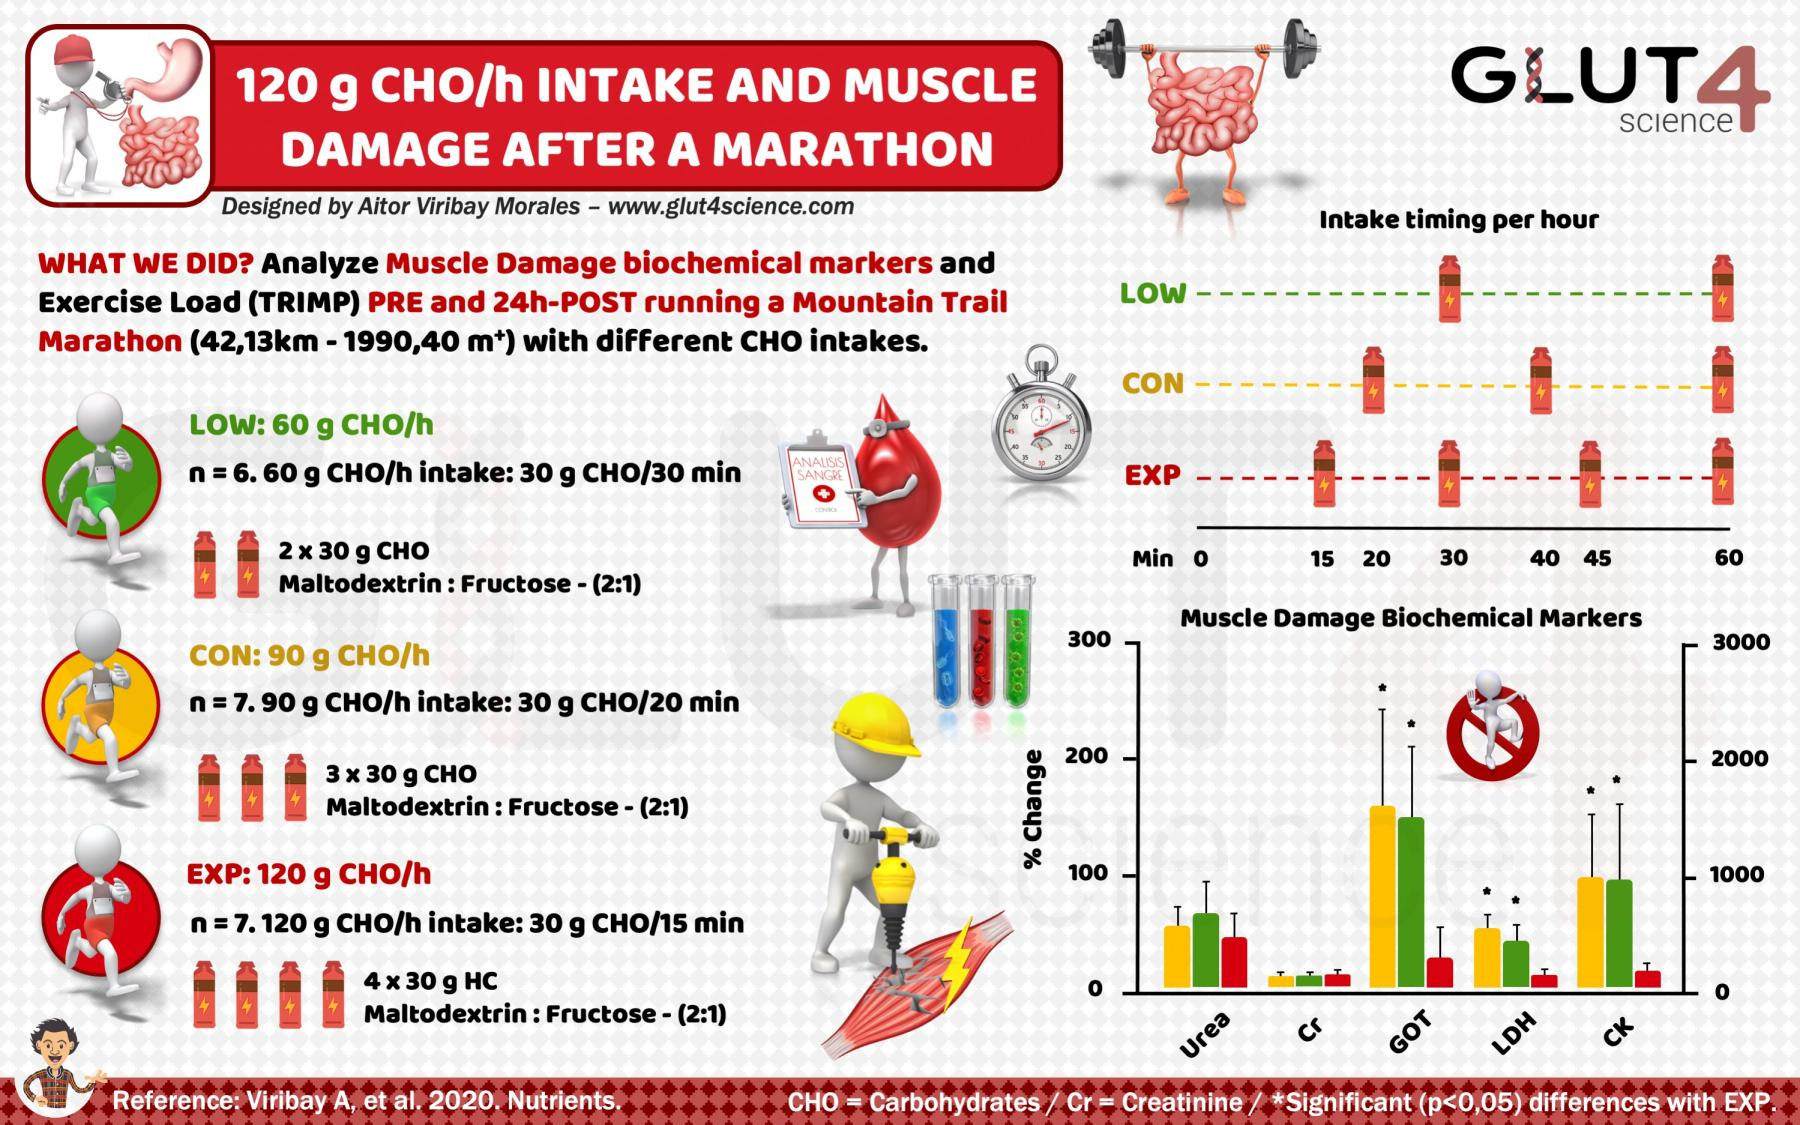 Intake of 120 grams per hour of Carbohydrates and muscle damage after a marathon - Viribay A - Glut4science.